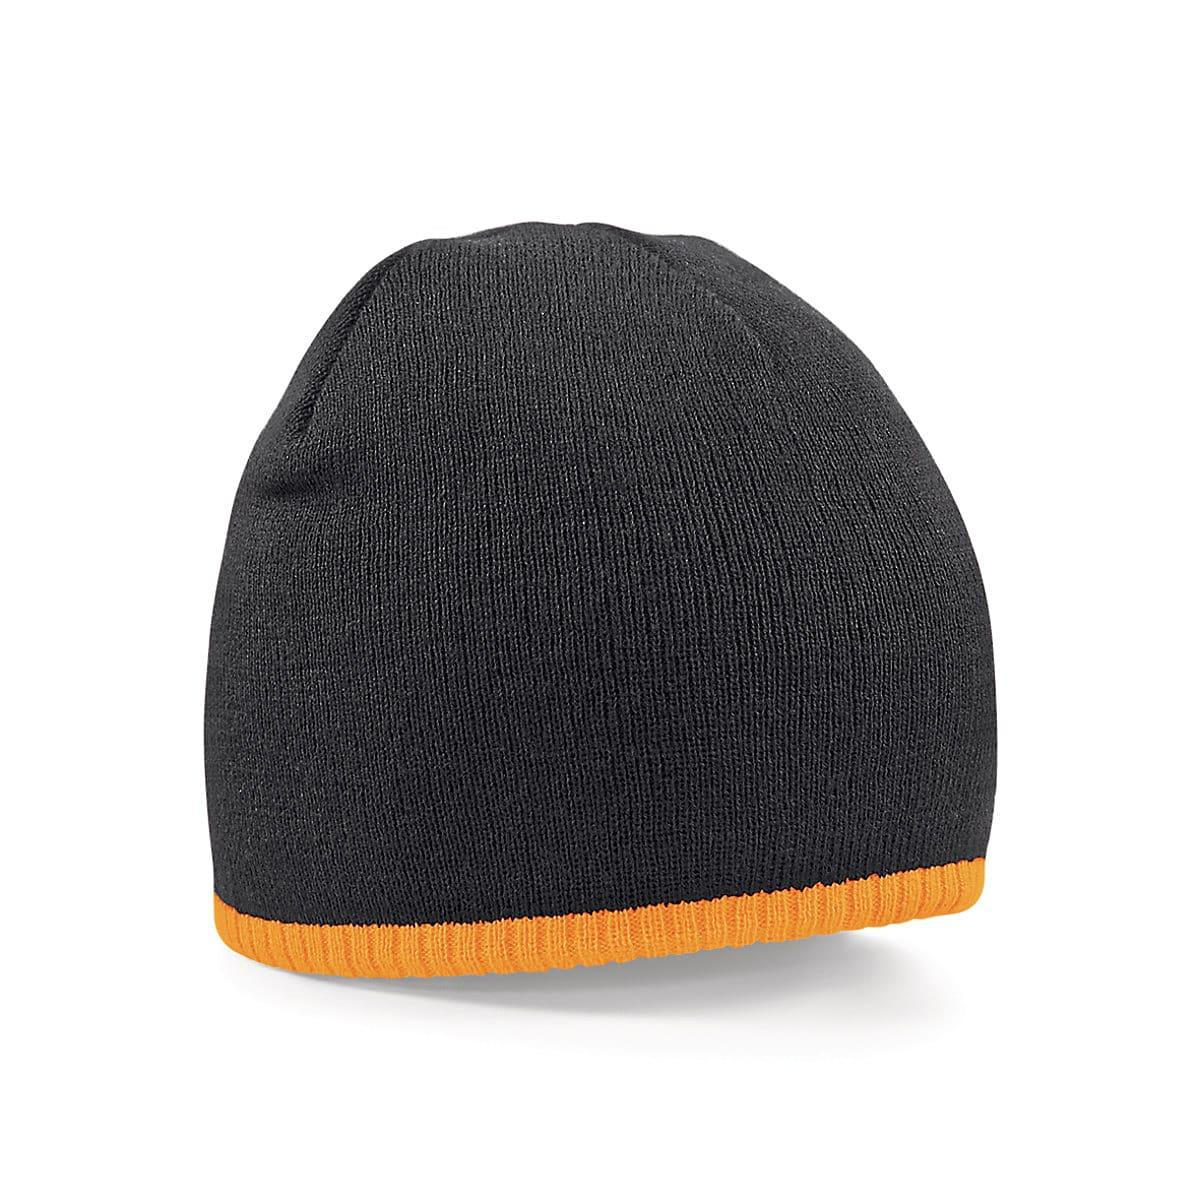 Beechfield Two-Tone Beanie Knitted Hat in Black / Fluorescent Orange (Product Code: B44C)